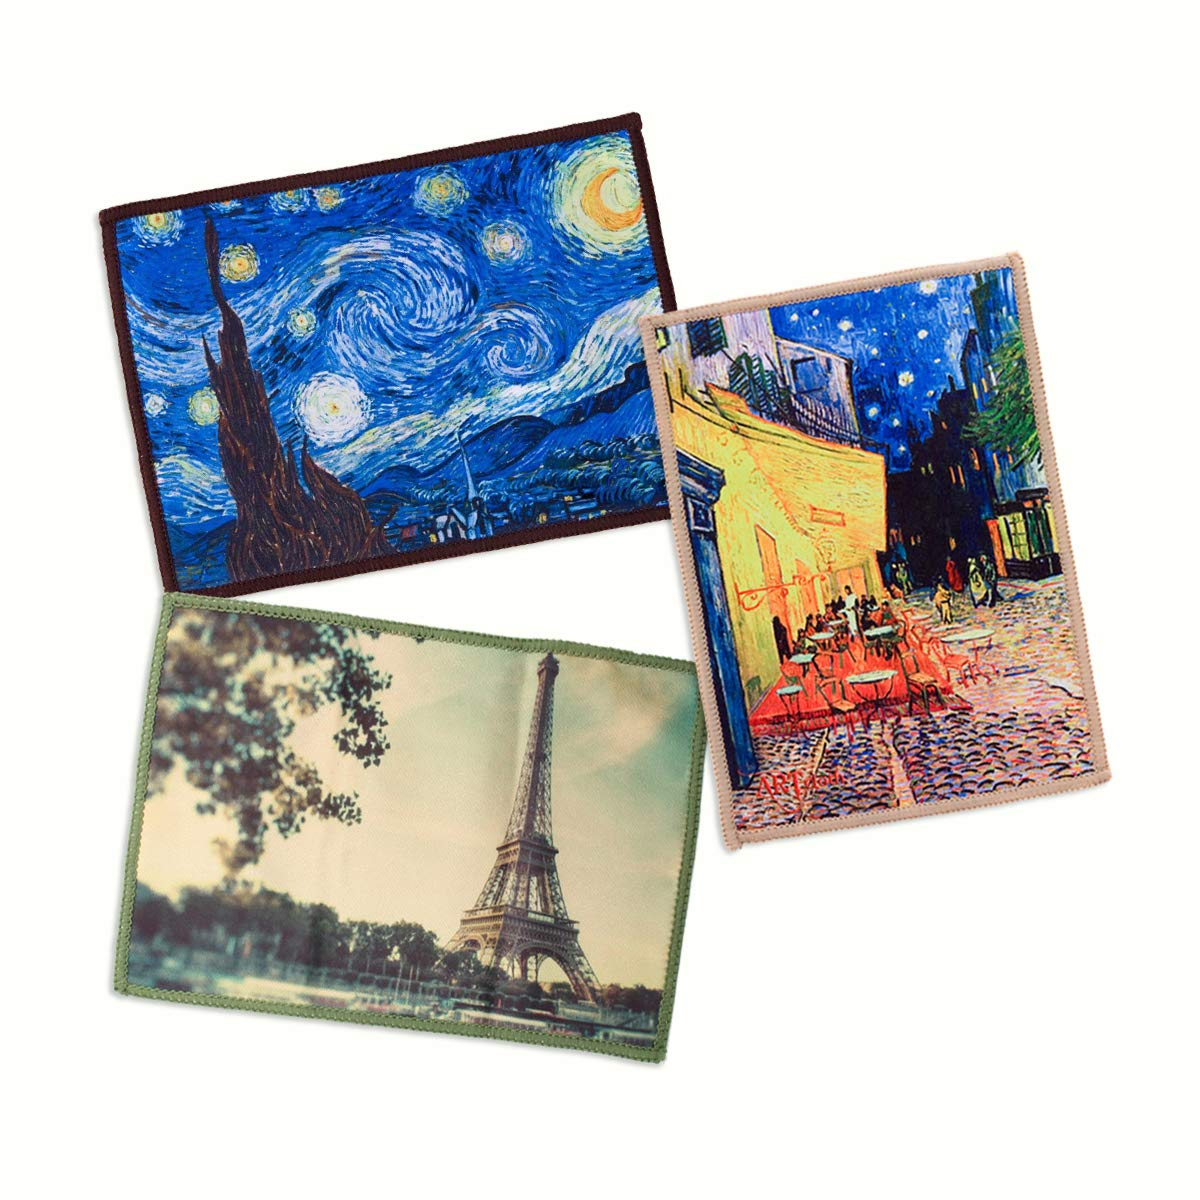 3-Pack Lynktec Smartie Microfiber Cleaning Cloth for iPad and Touch Screen (Van Gogh Cafe Terrace, Van Gogh Starry Night, Paris Eiffel Tower) by Lynktec